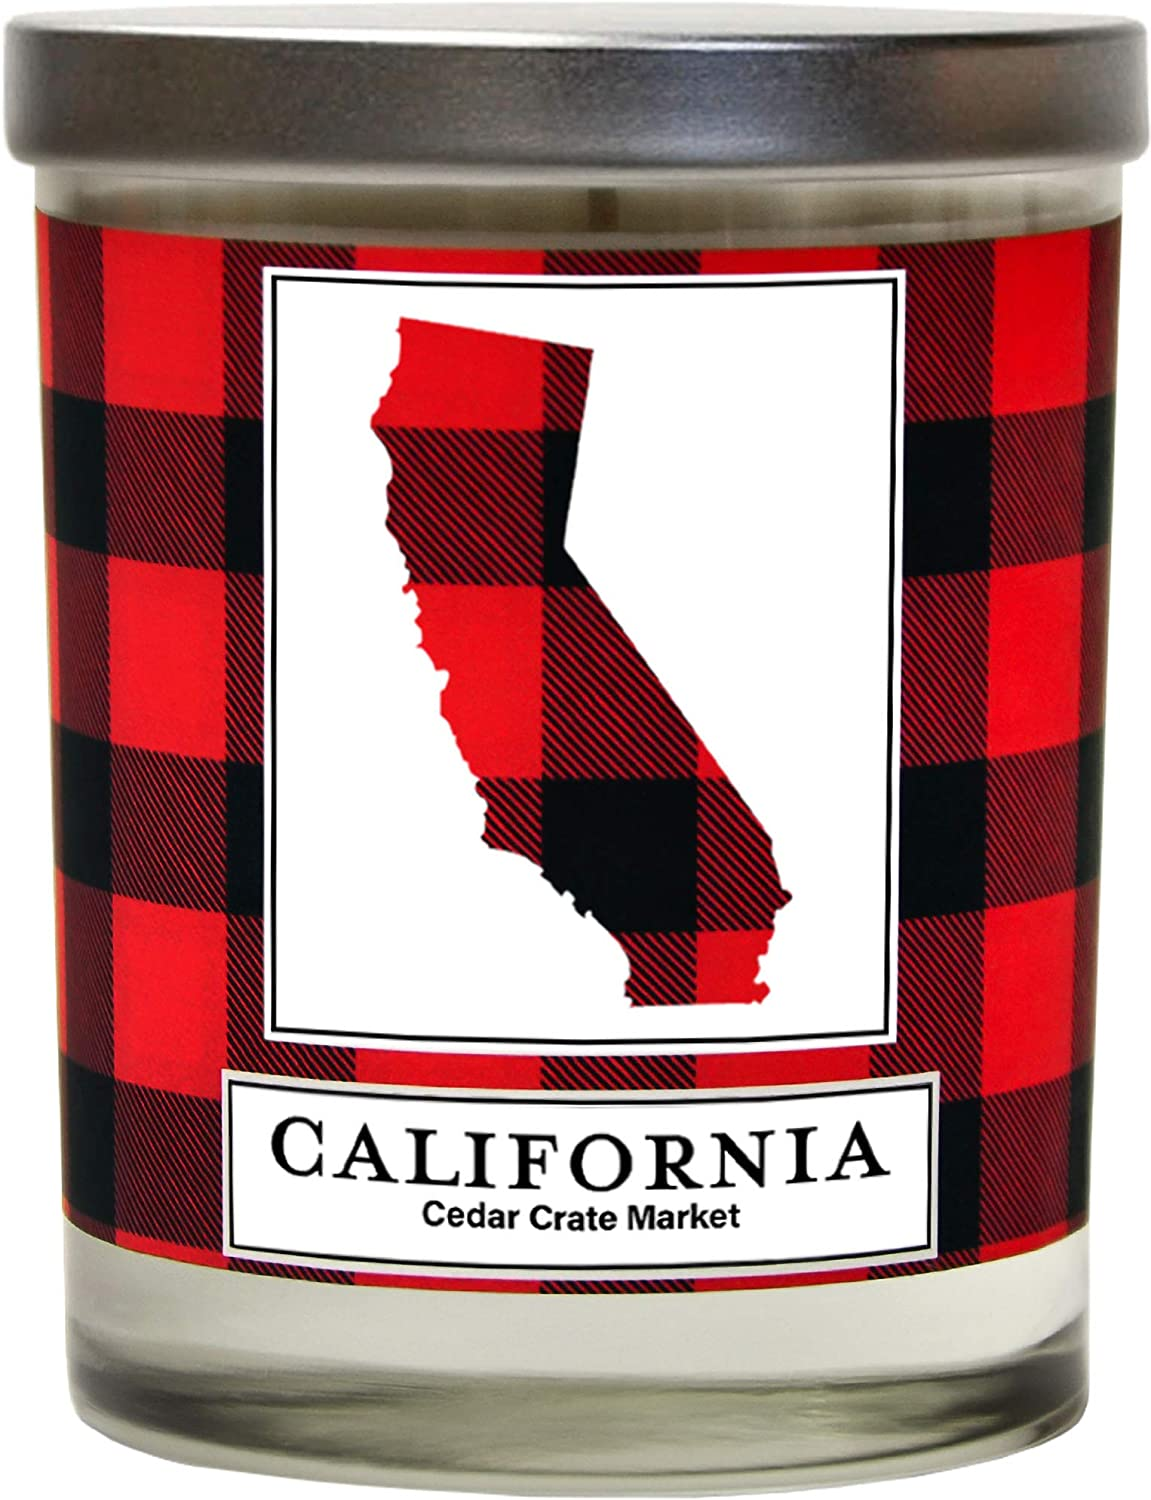 California Buffalo Plaid Scented Soy Candle | Fraser Fir, Pine Needle, Cedarwood | 10 Oz. Decorative Glass Jar Candle | Made in The USA | Going Away California Gifts for Friends | State Candles